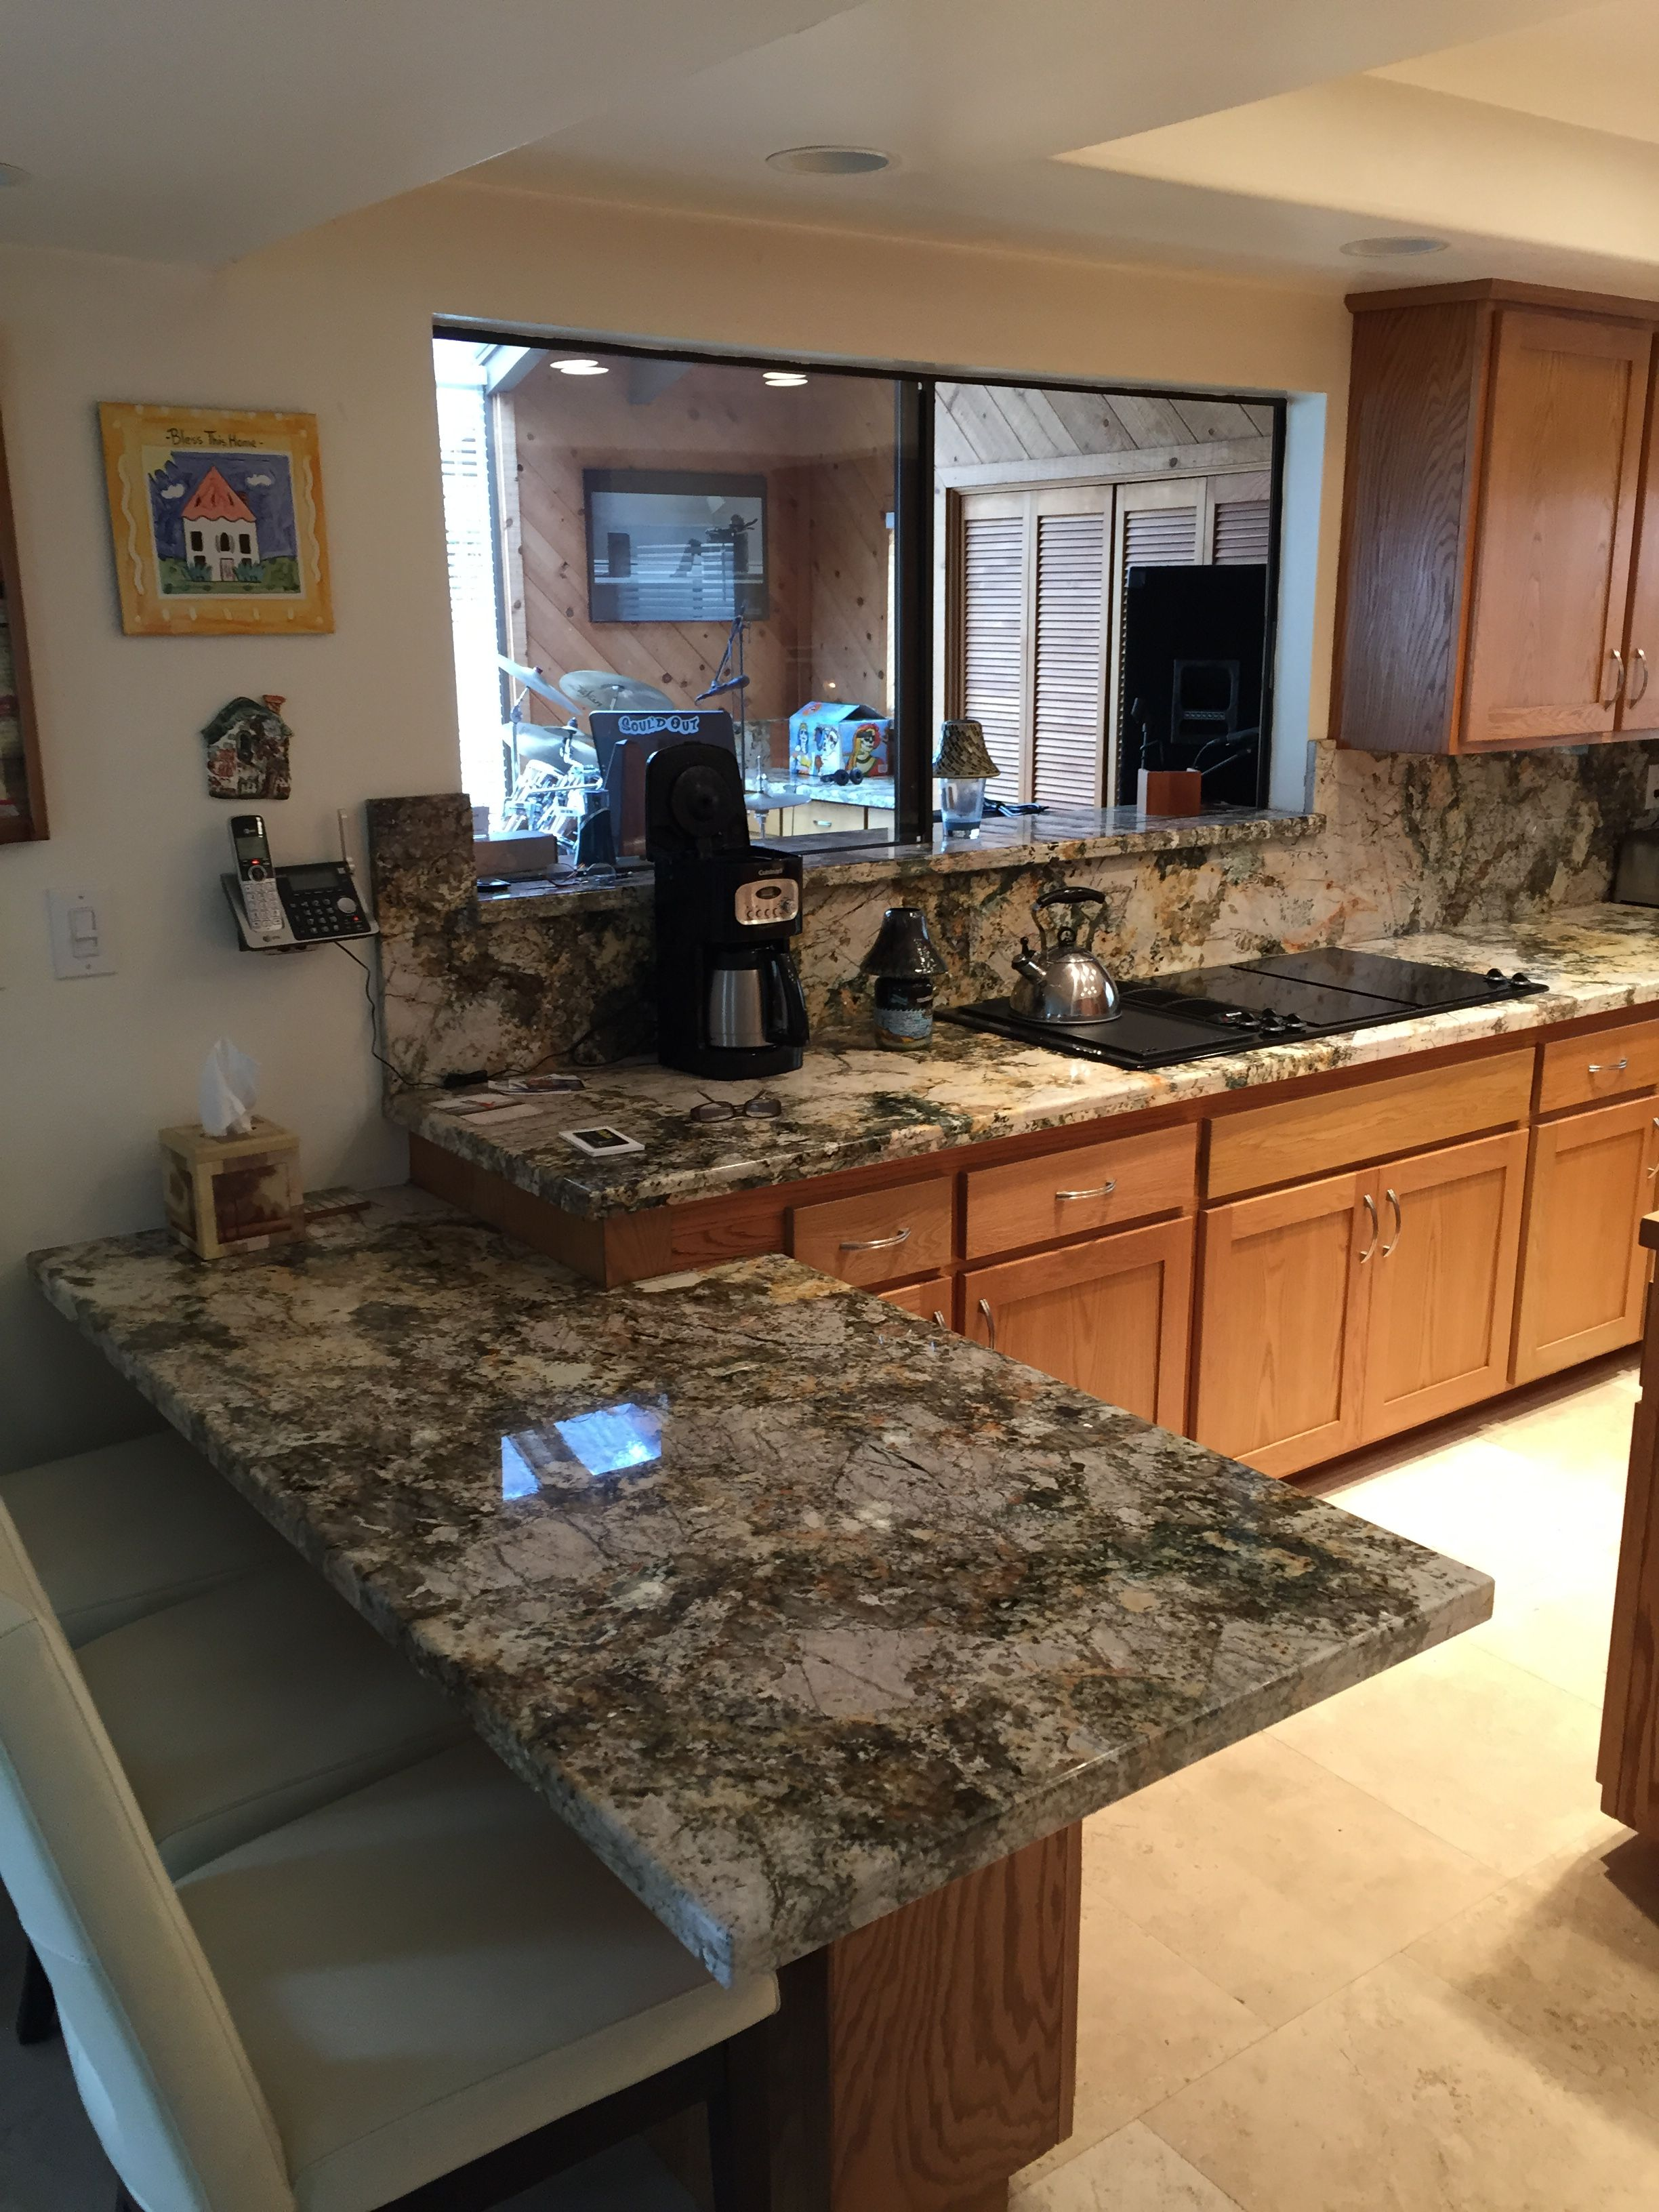 Barricato Granite Counter Top And Full Backsplash